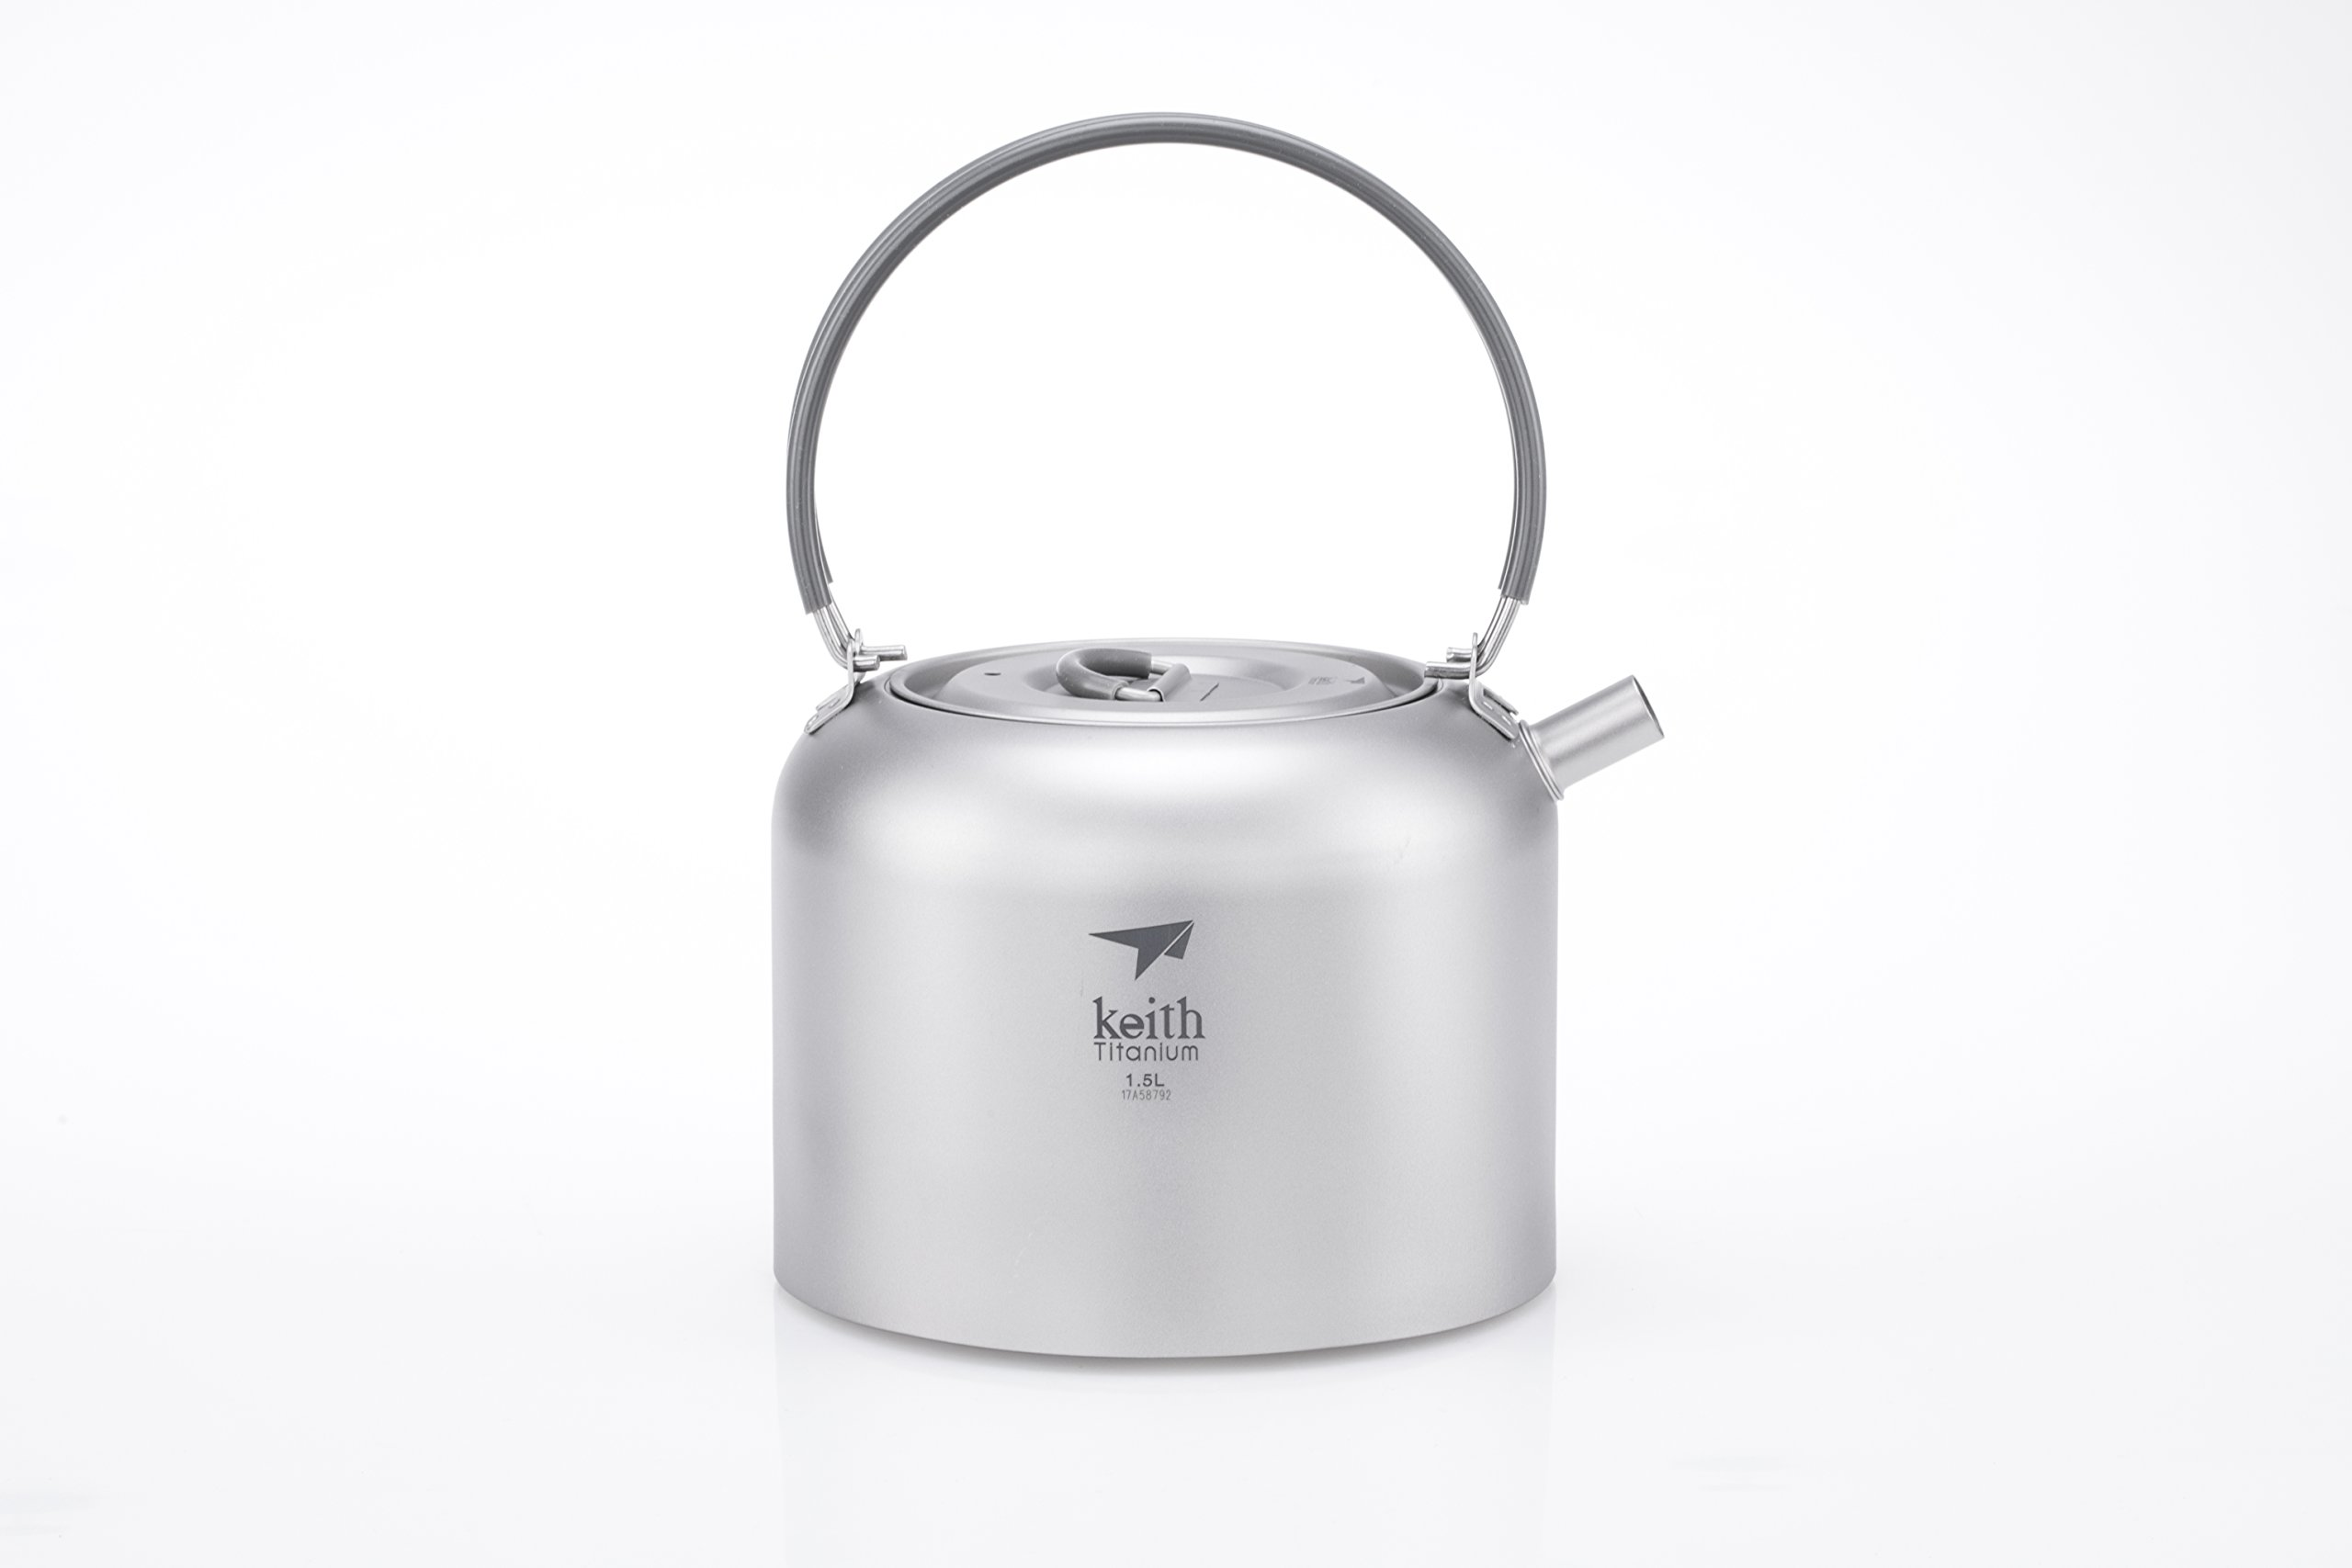 Keith Titanium Ti3907 Kettle - 1.5 L by Keith Titanium